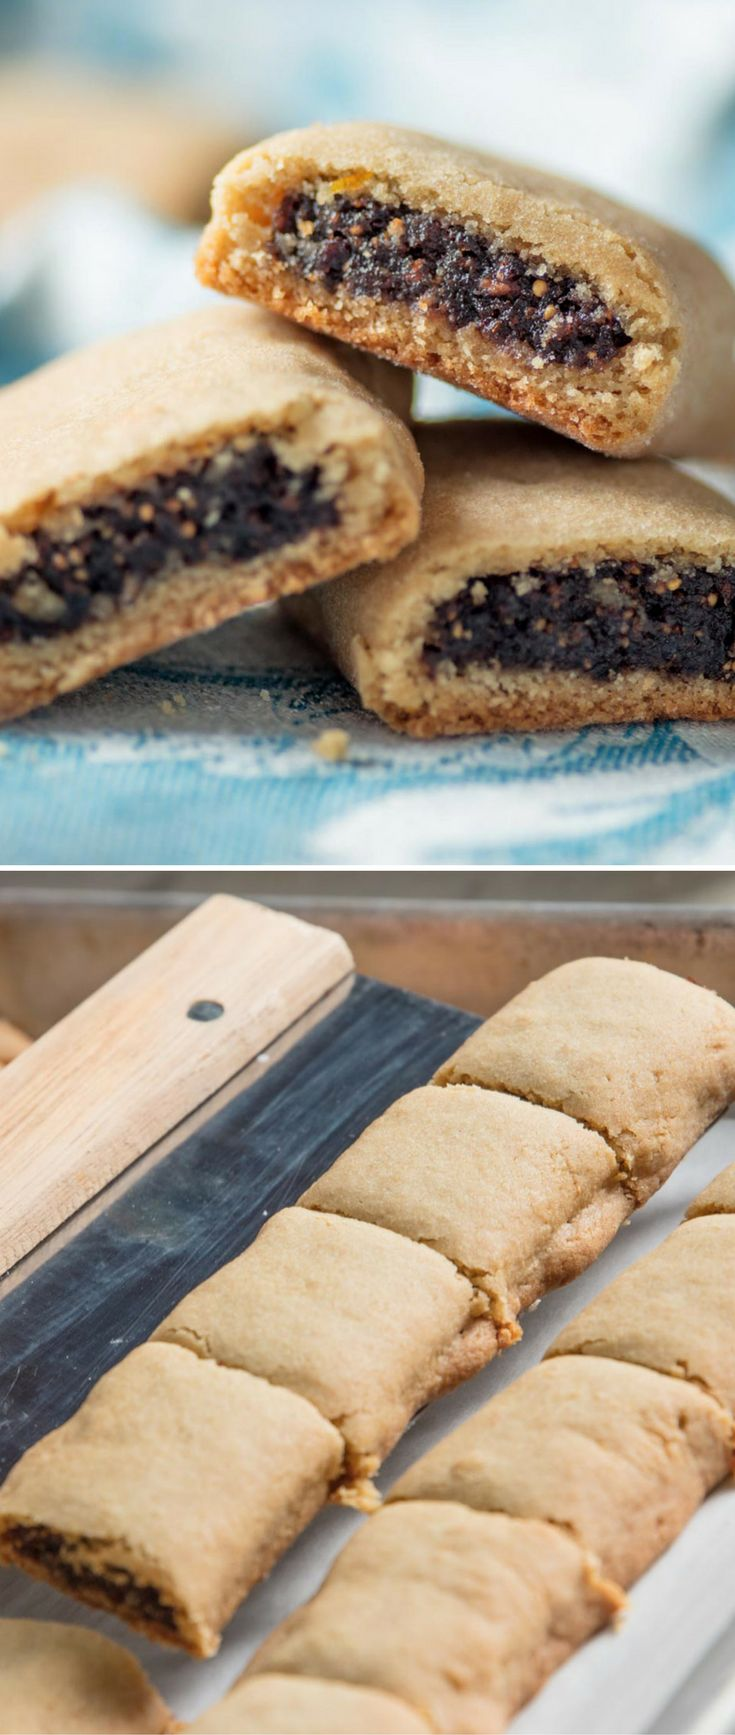 In the end, these cookies come together with a flavor remarkably like the original, with a freshness that can't be beat. They're tender, soft, and cakey, with a gentle hint of cinnamon and orange to play up the concentrated fruitiness of dried Mission figs.